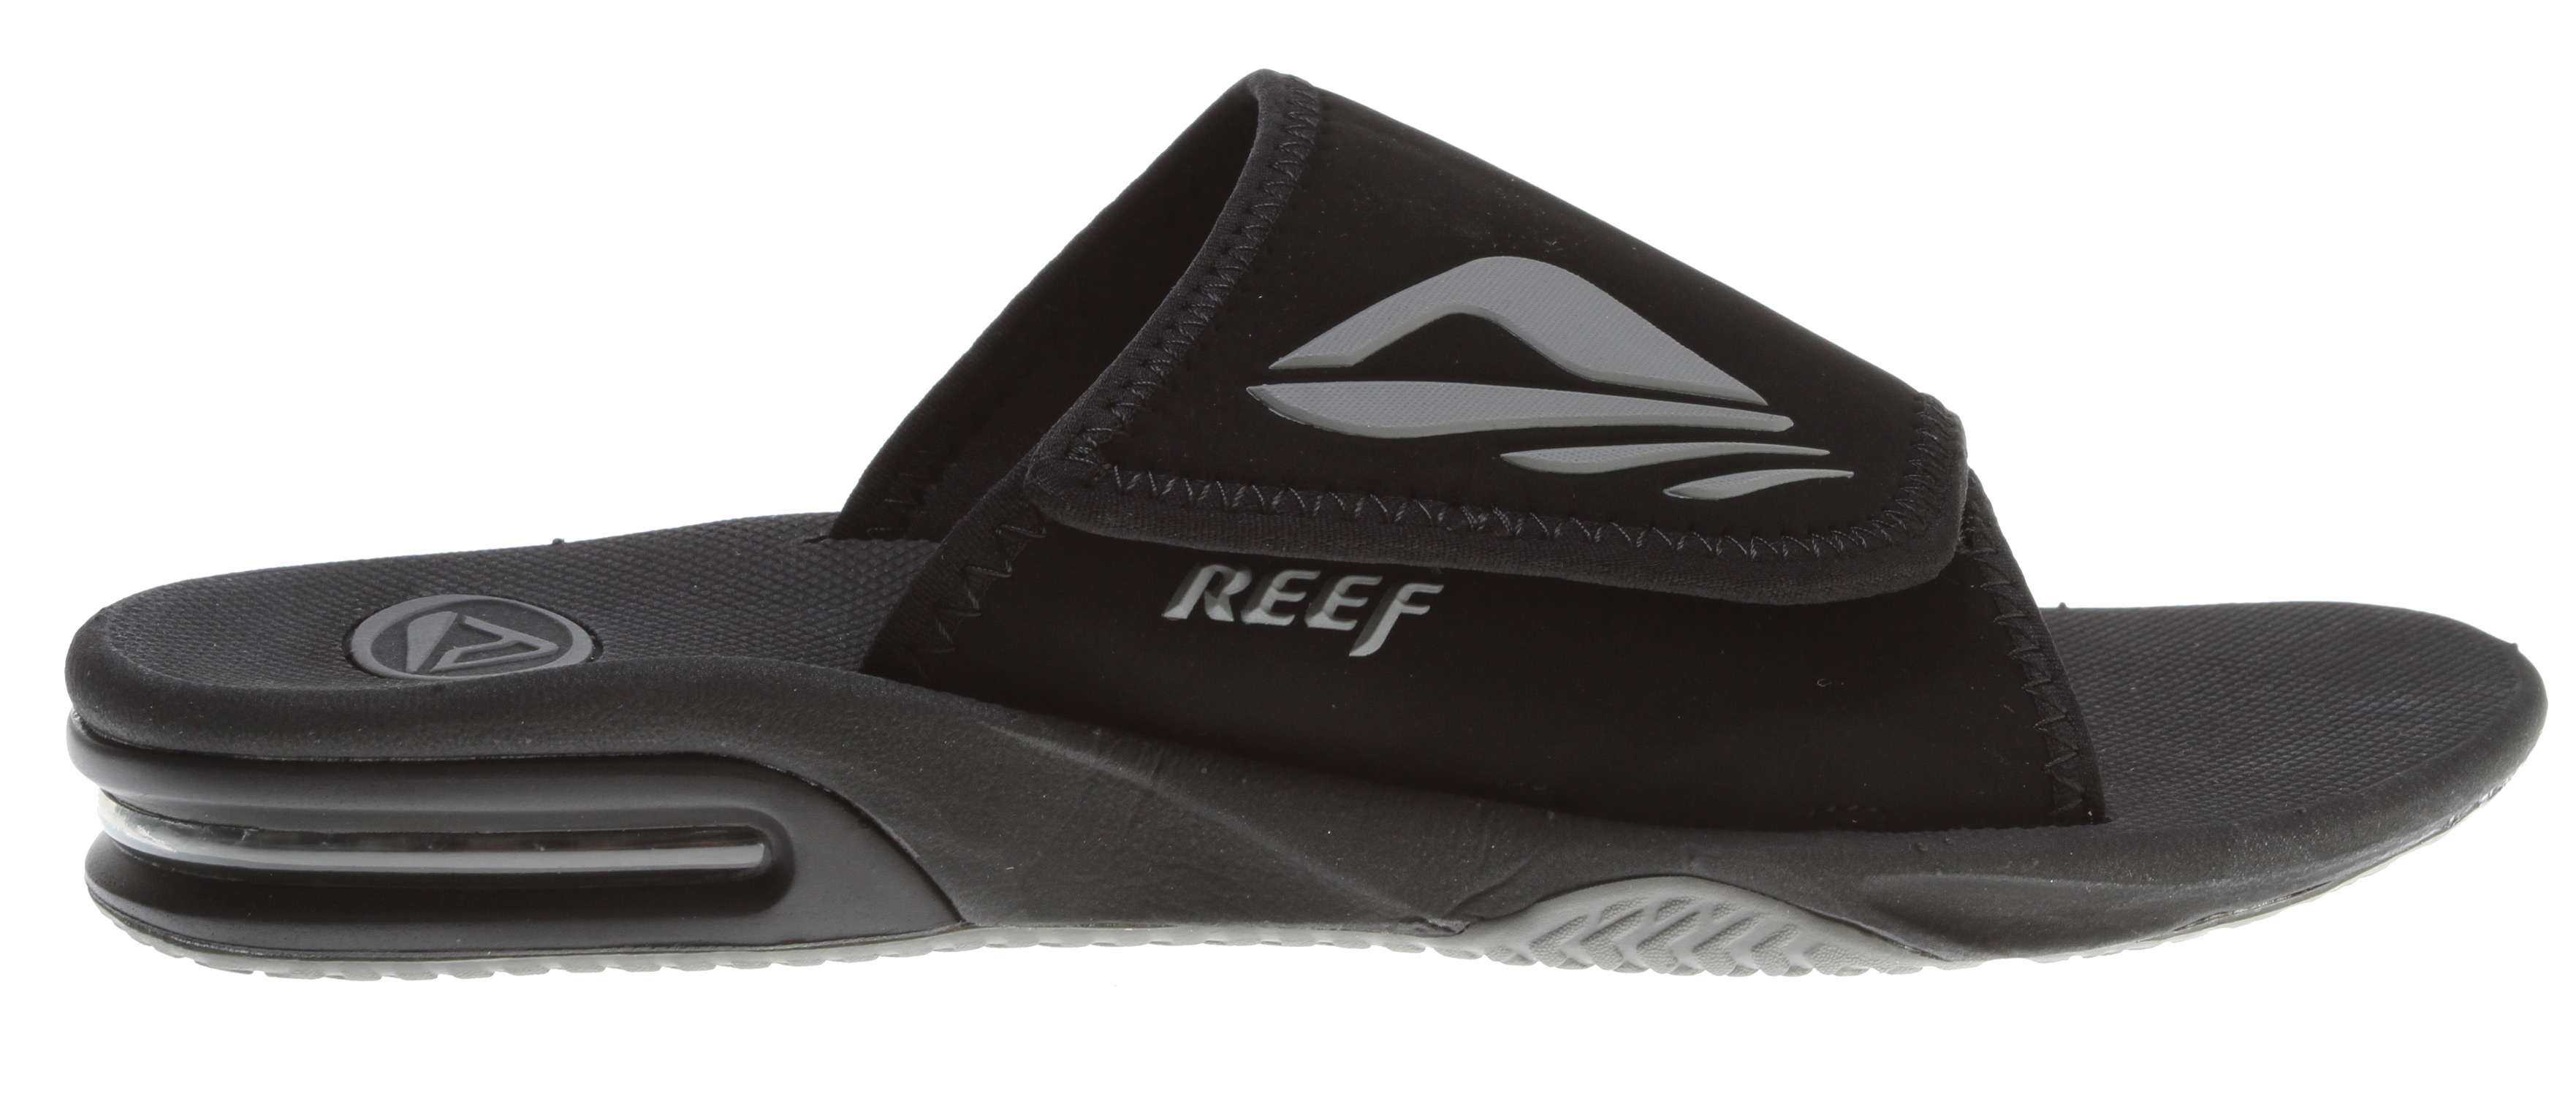 "Surf Key Features of the Reef Adjustable Byob Sandals: Adjustable comfortable, water friendly synthetic nubuck upper Secret ""hide a key"" pocket under the strap contoured compression molded eva footbed with anatomical arch support Full 360 degree heel airbag enclosed in soft polyurethane Church key to open your ""soda"" bottle Reef icon herringbone rubber outsole - $55.00"